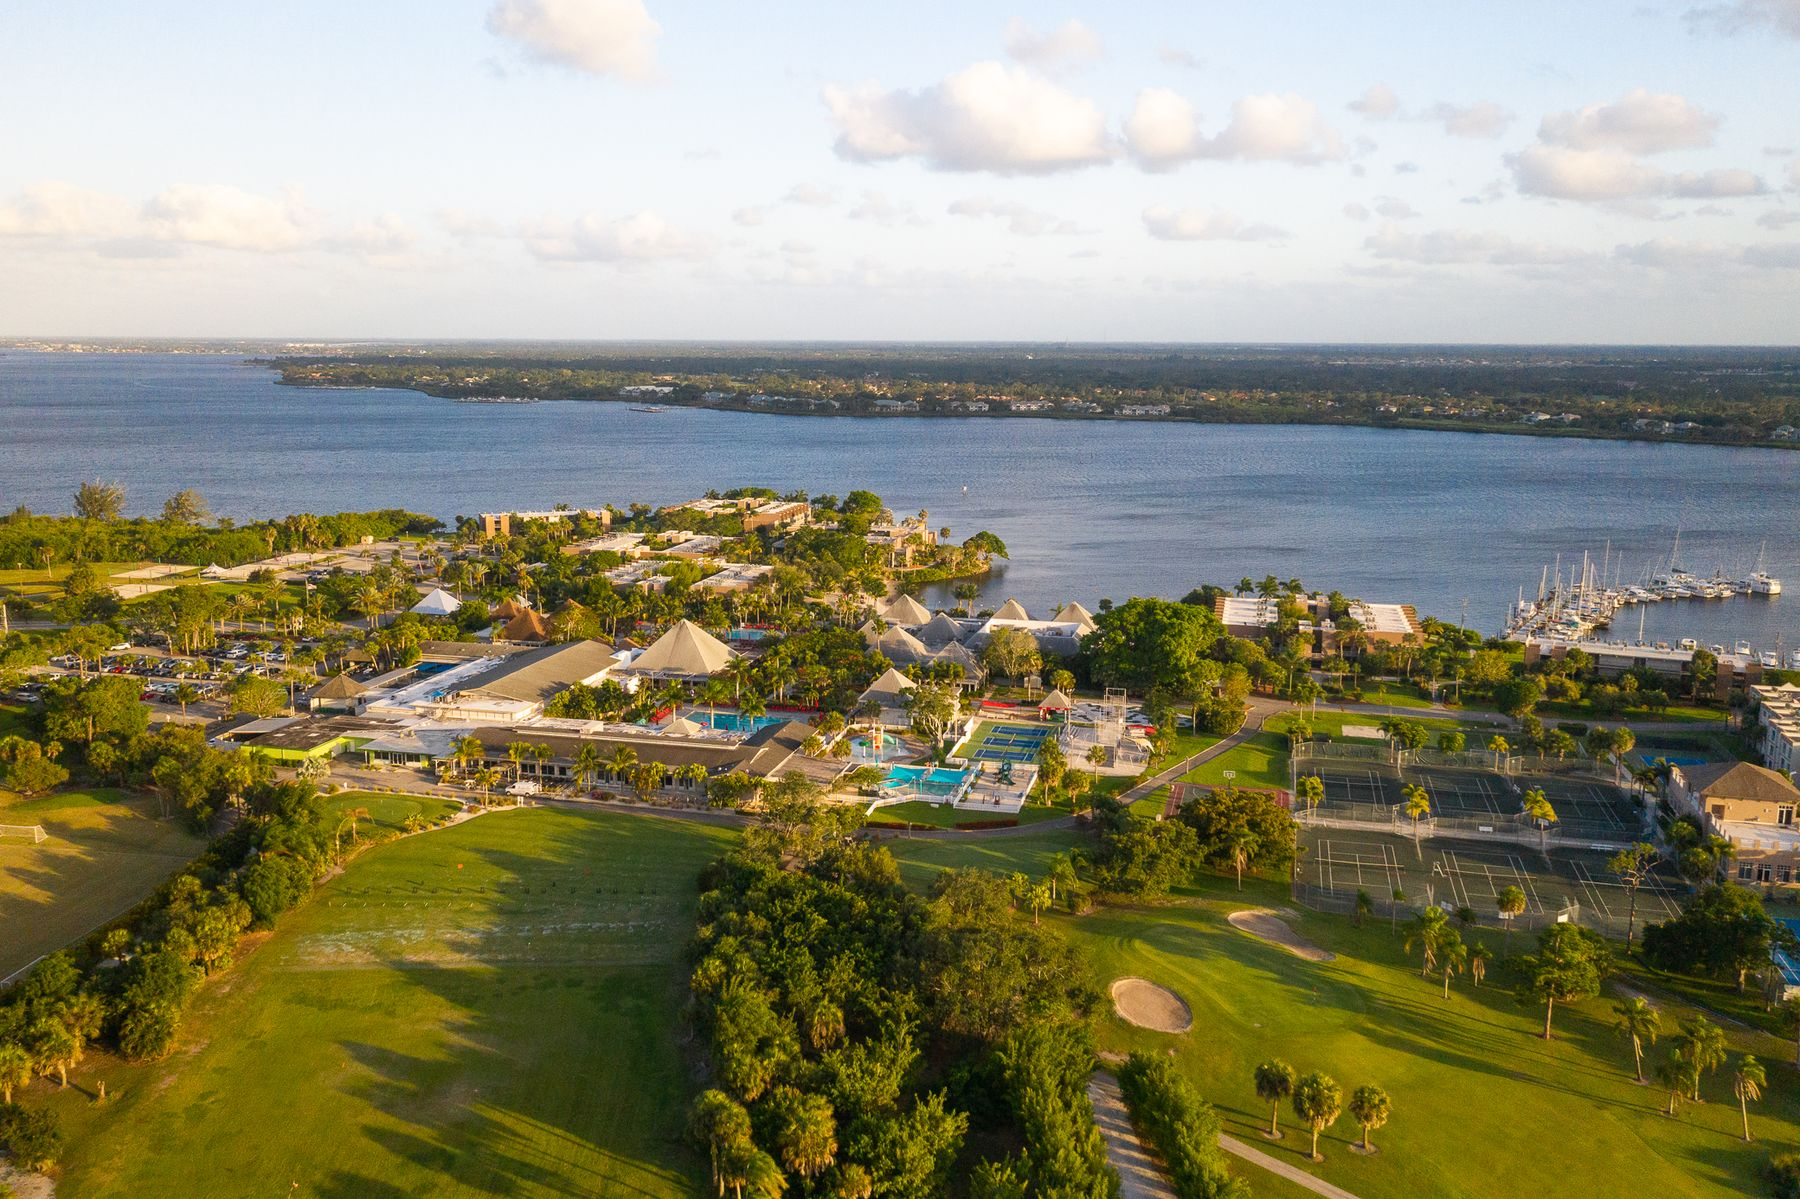 Aerial view of Club Med Sandpiper Bay